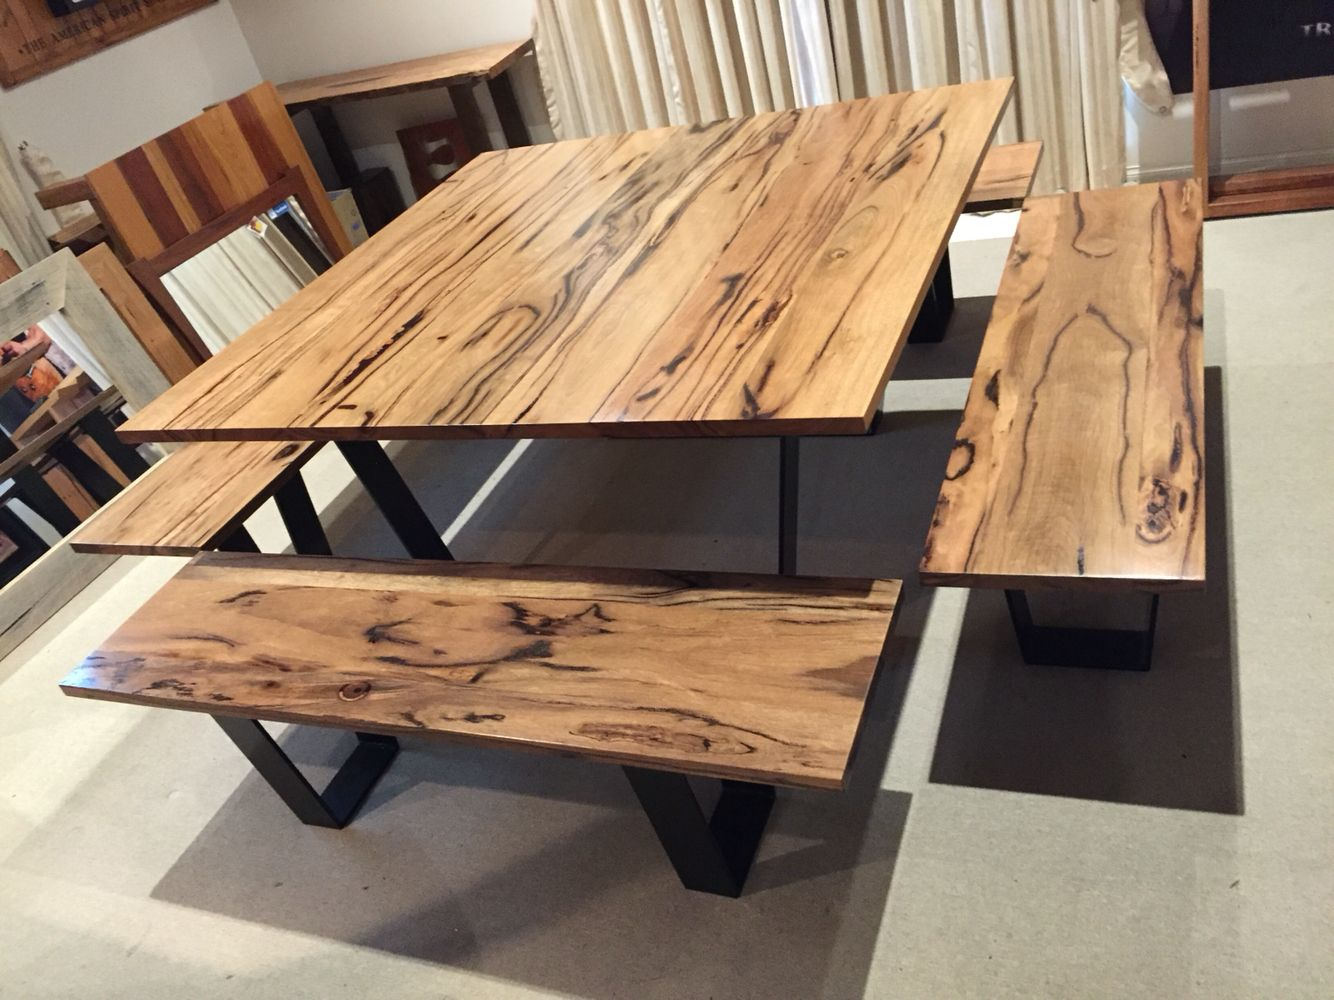 Dining Table And Matching Bench Seats Made From Marri Hardwood Timber Black Powder Coated Legs Timber Dining Table Dining Table Timber Beds [ 1000 x 1334 Pixel ]